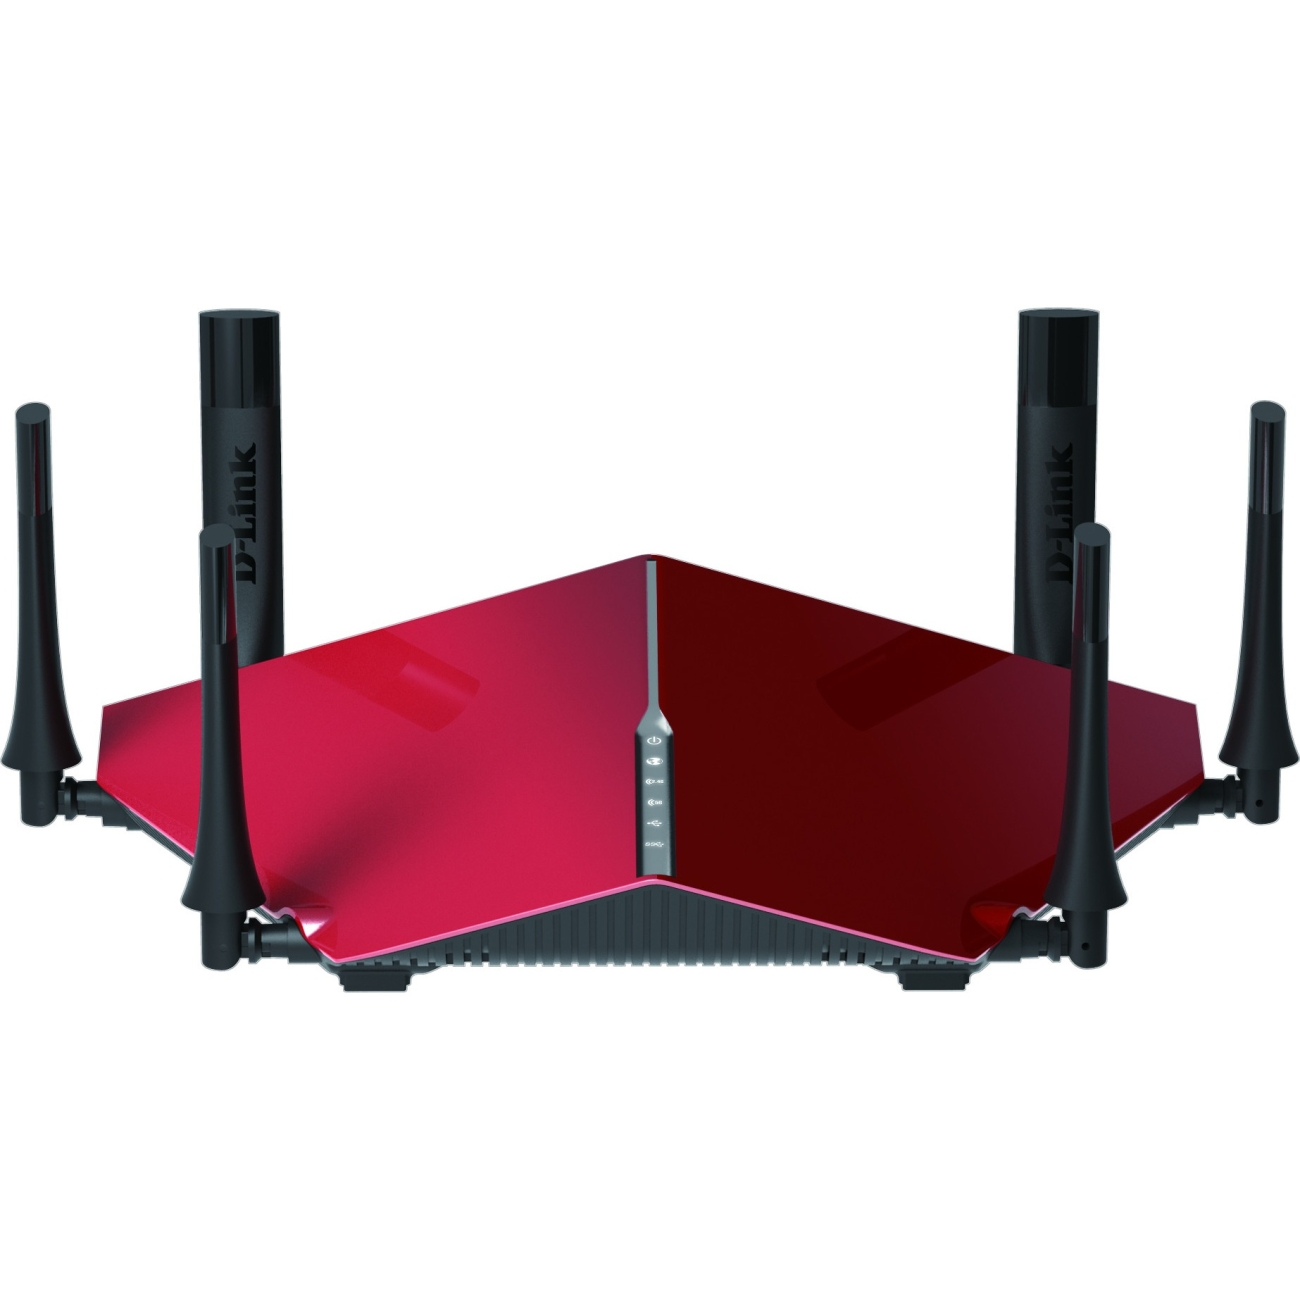 D-LINK Dir-890l Ieee 802.11ac Ethernet Wireless Router - ...